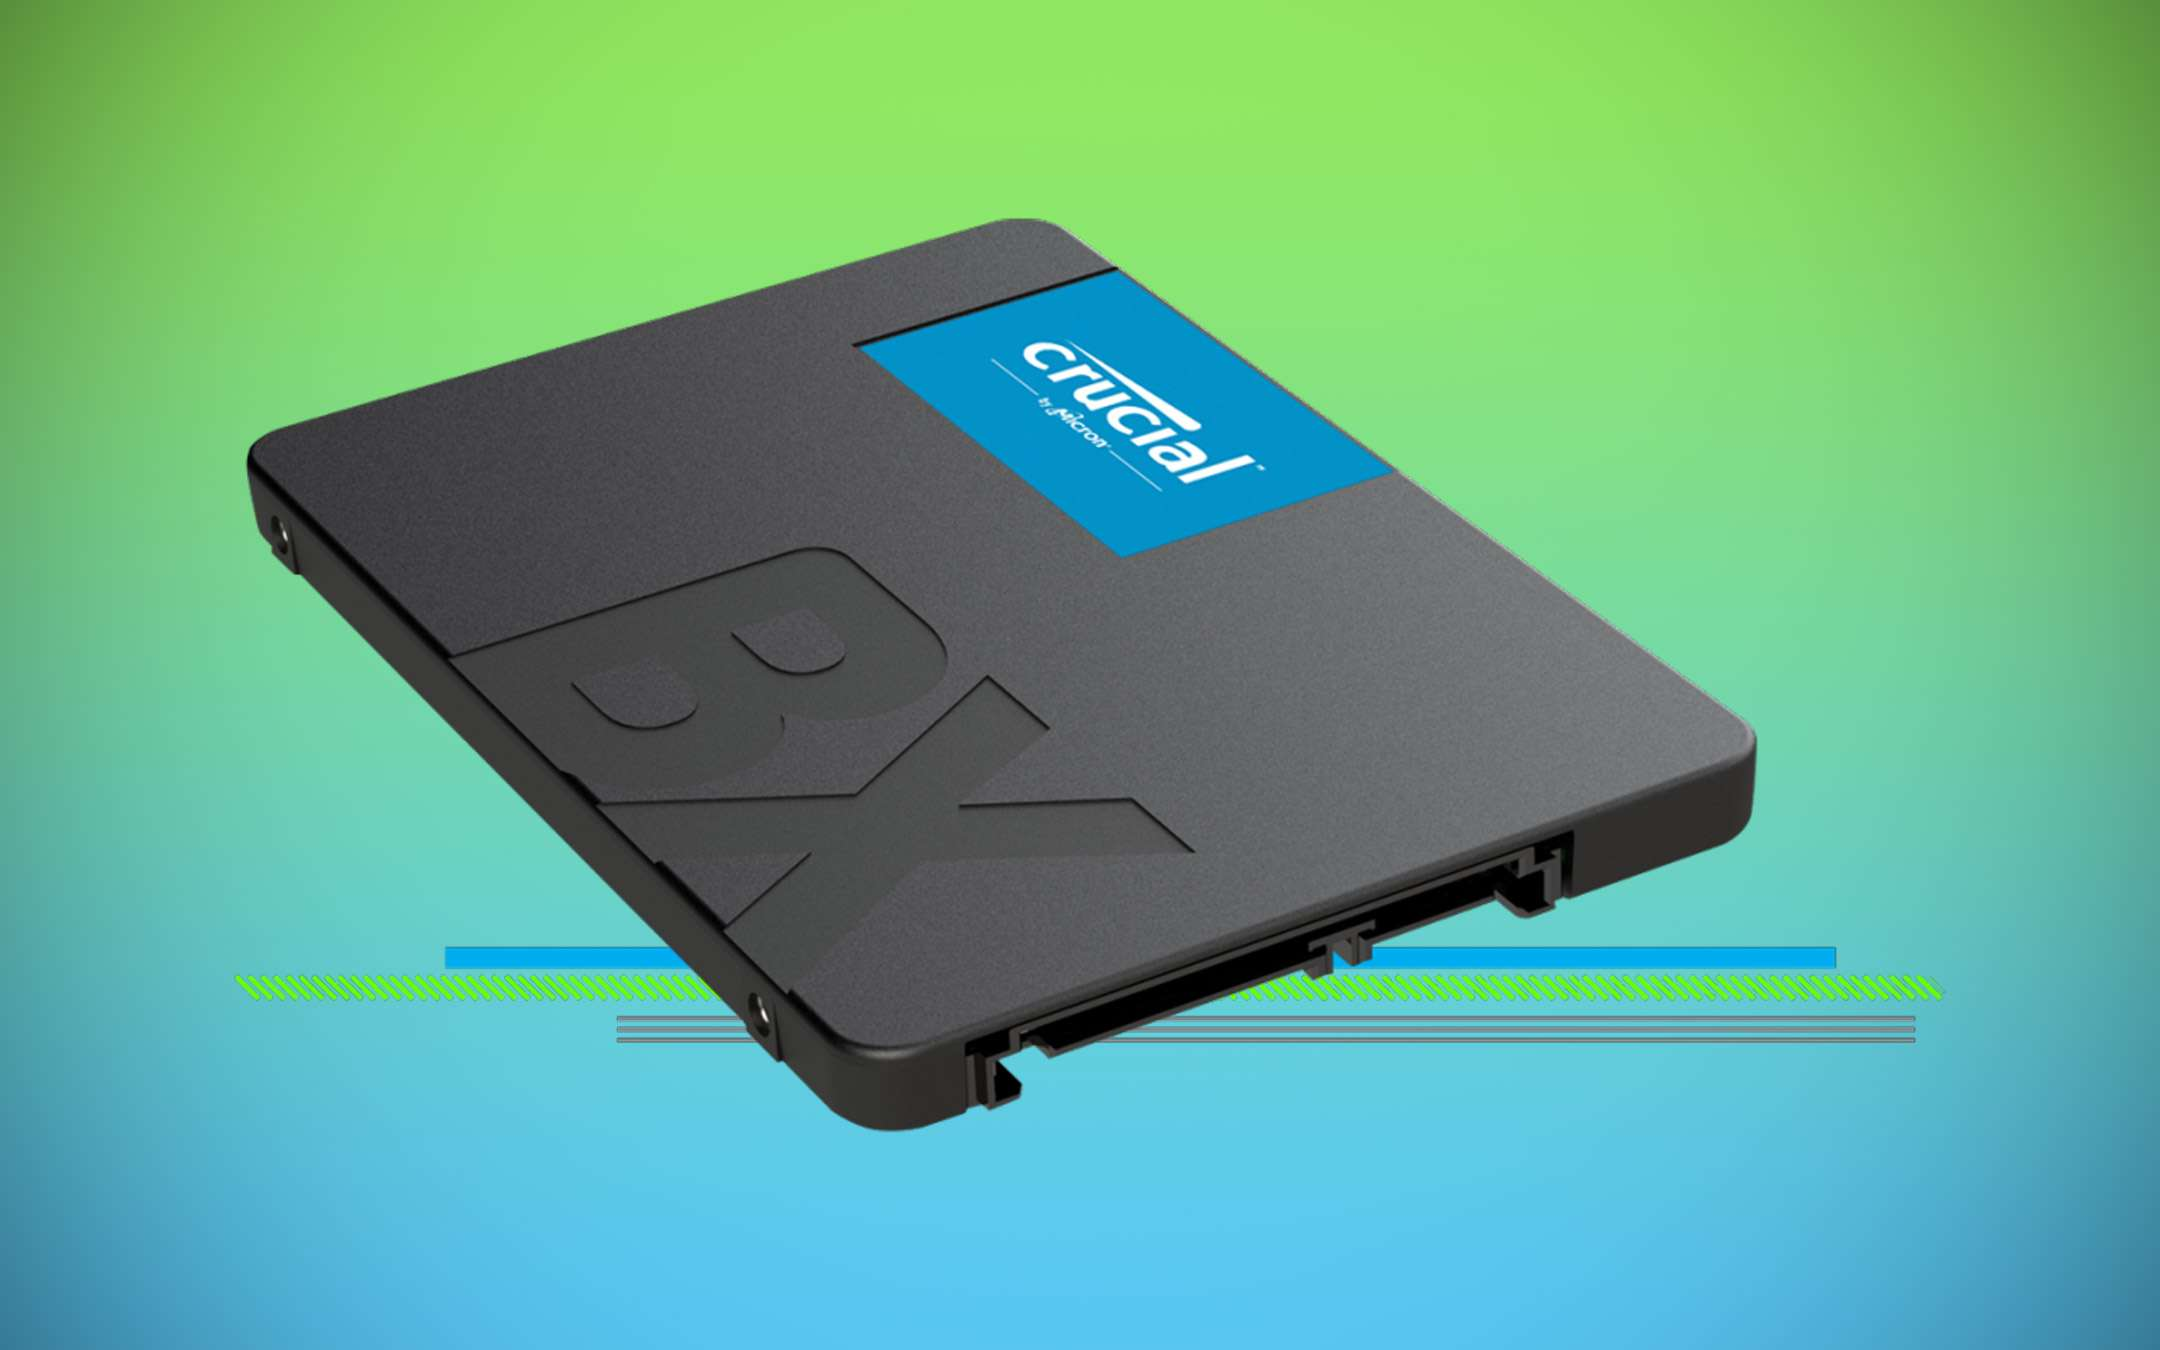 Less than 35 euros for the 240 GB Crucial BX500 SSD